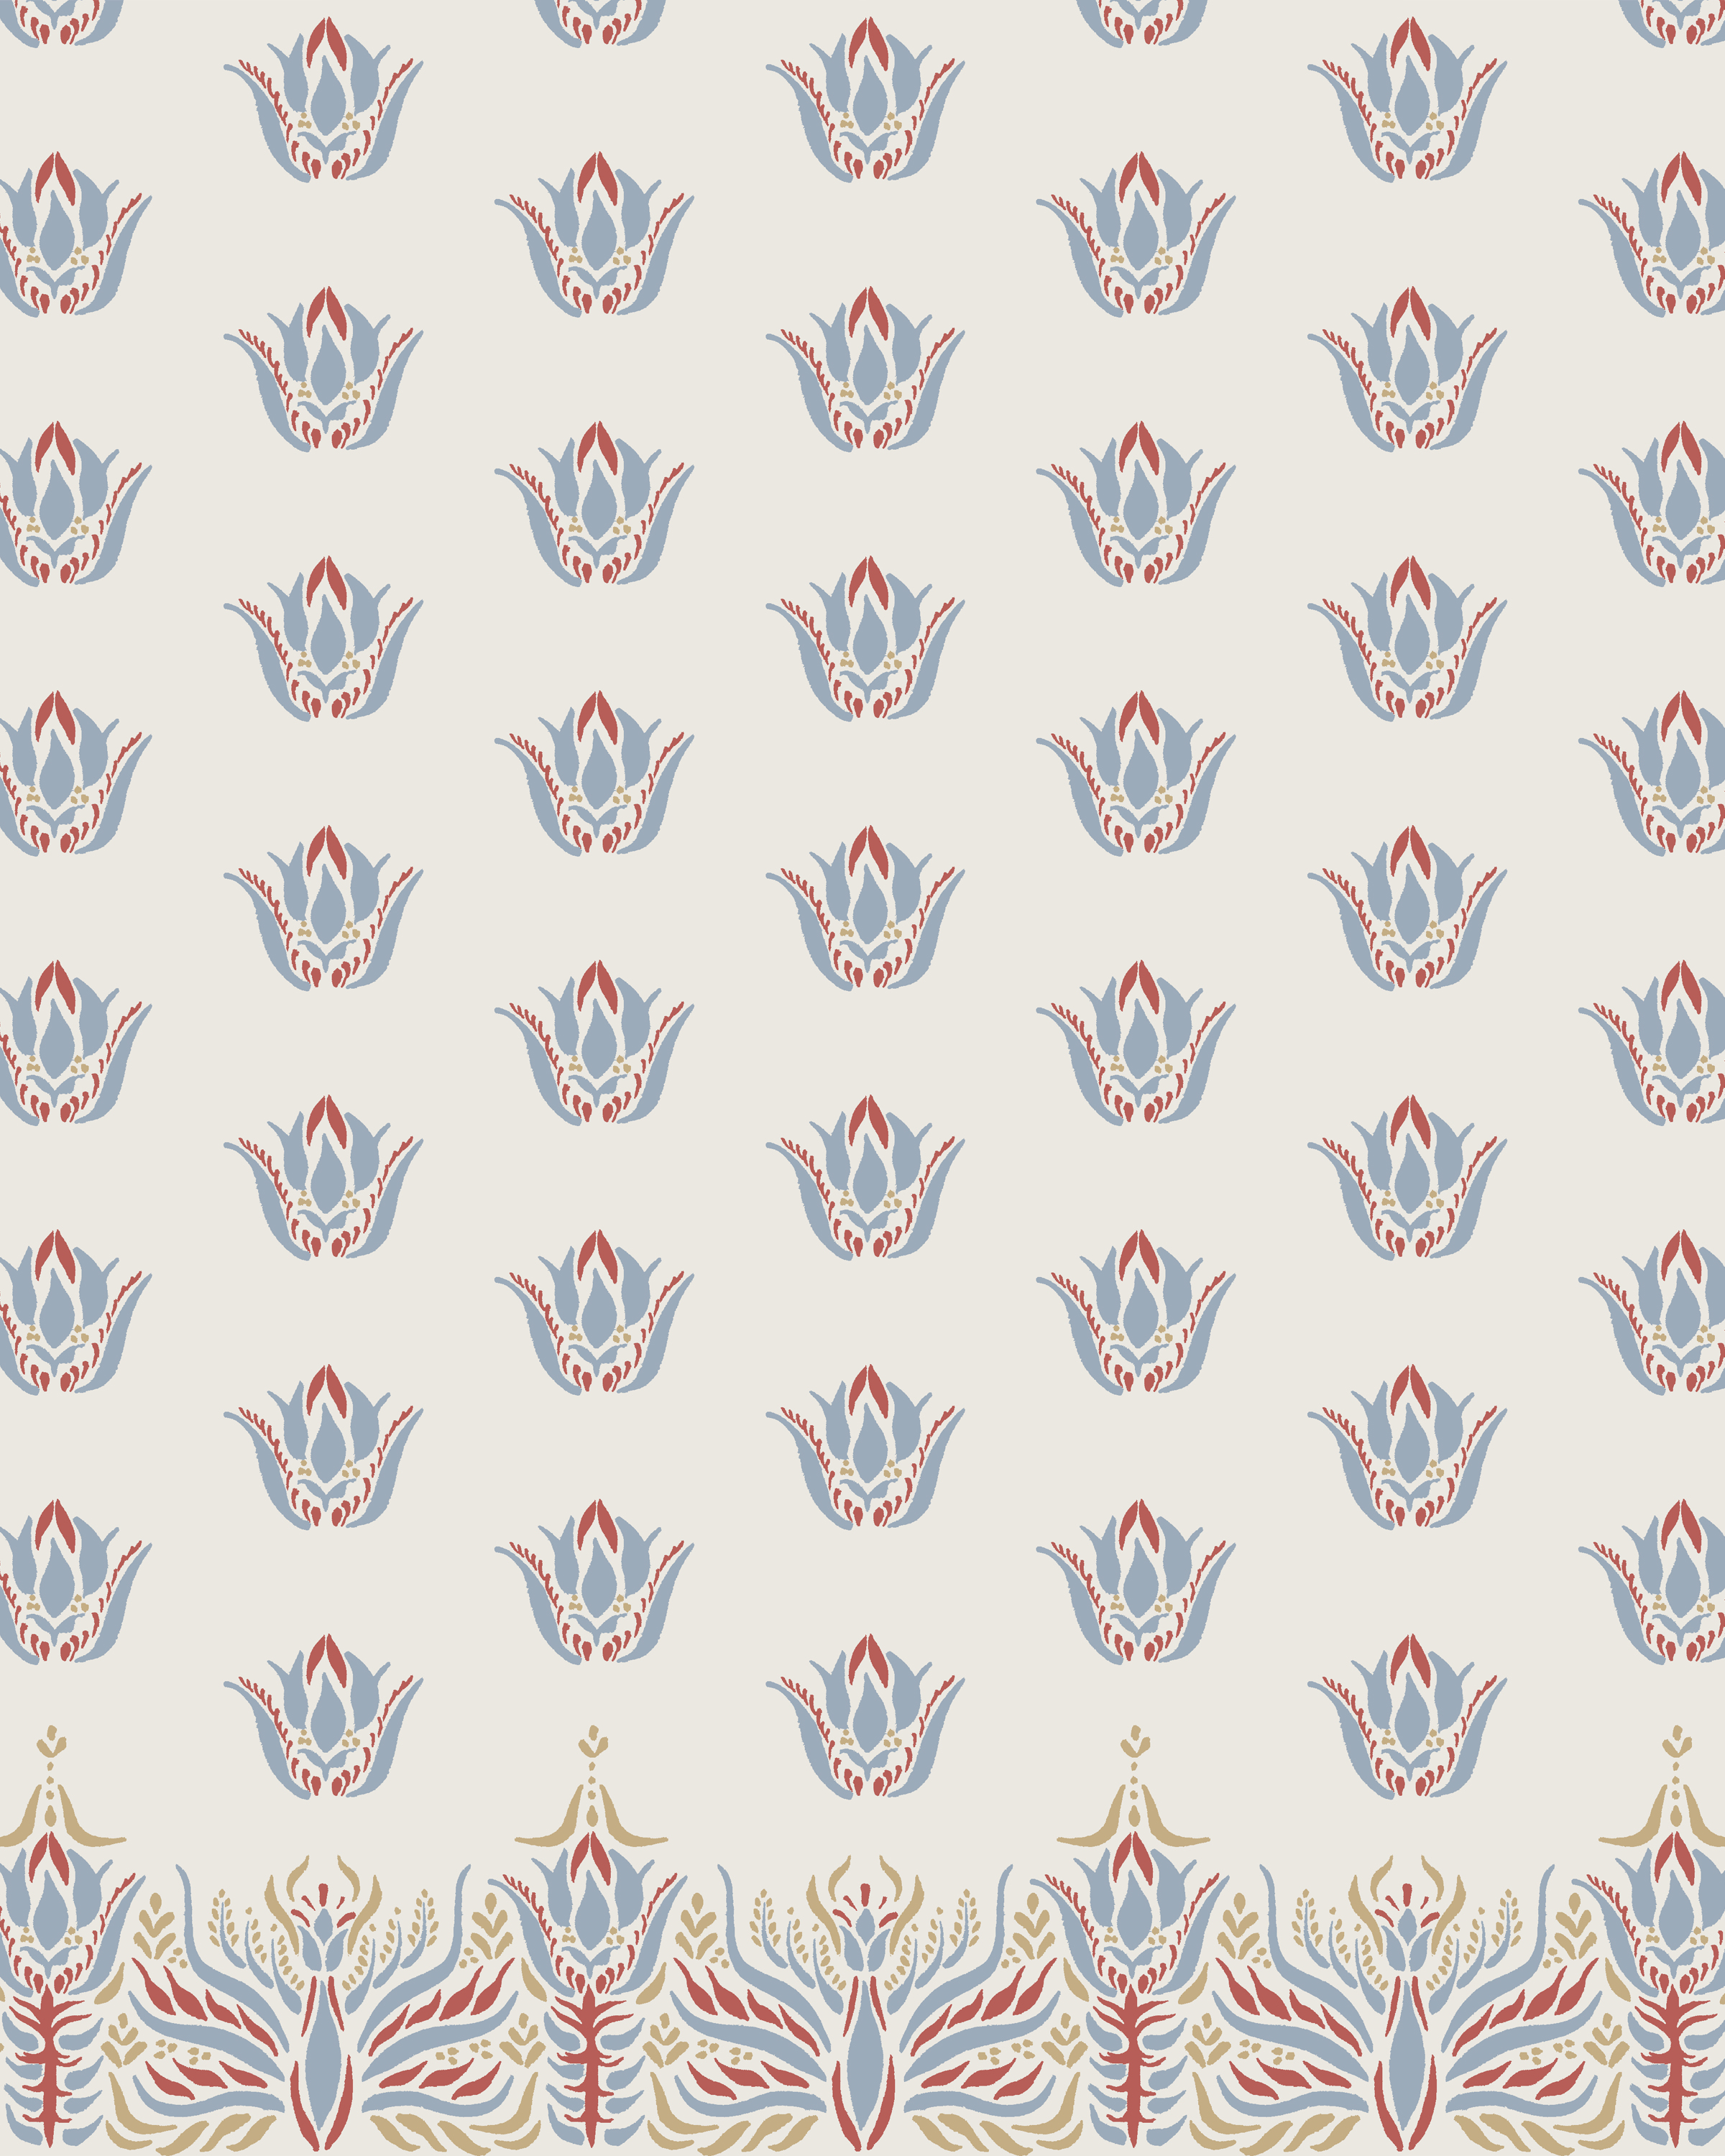 Little Indian Motifs Border with Repeat Soft Primaries.jpg